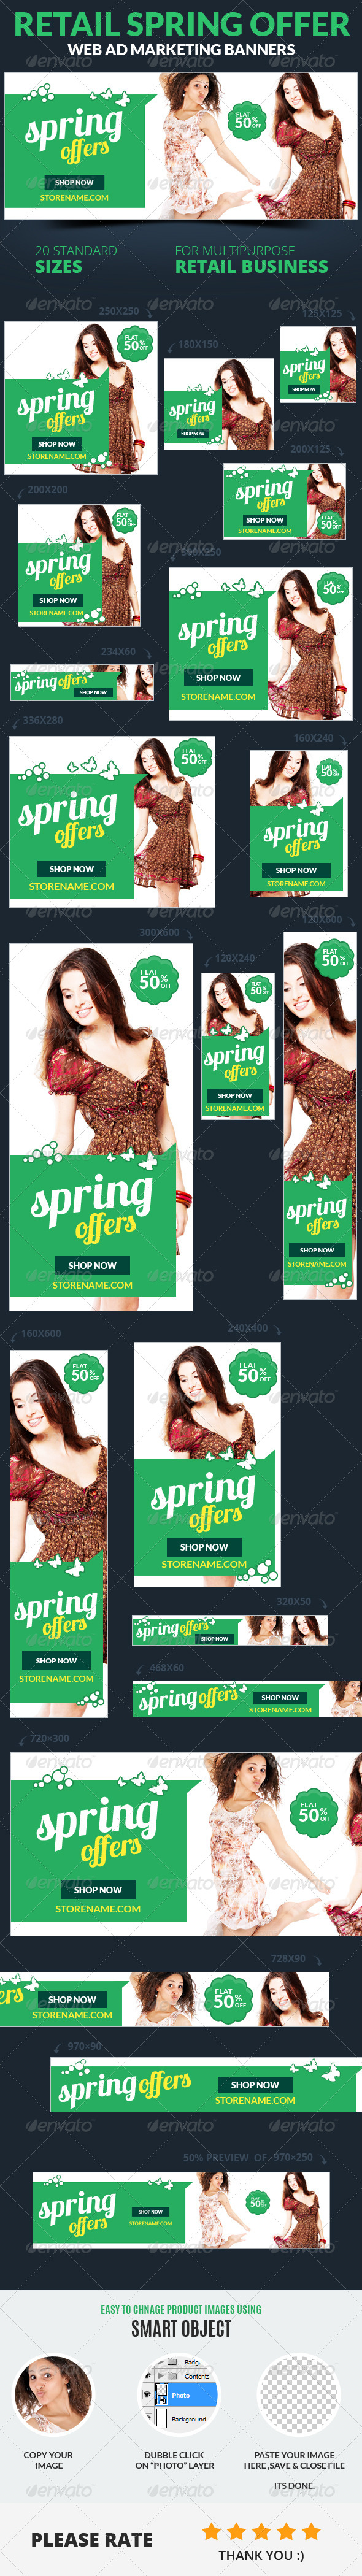 Retail Spring Offer Web Ad Marketing Banners